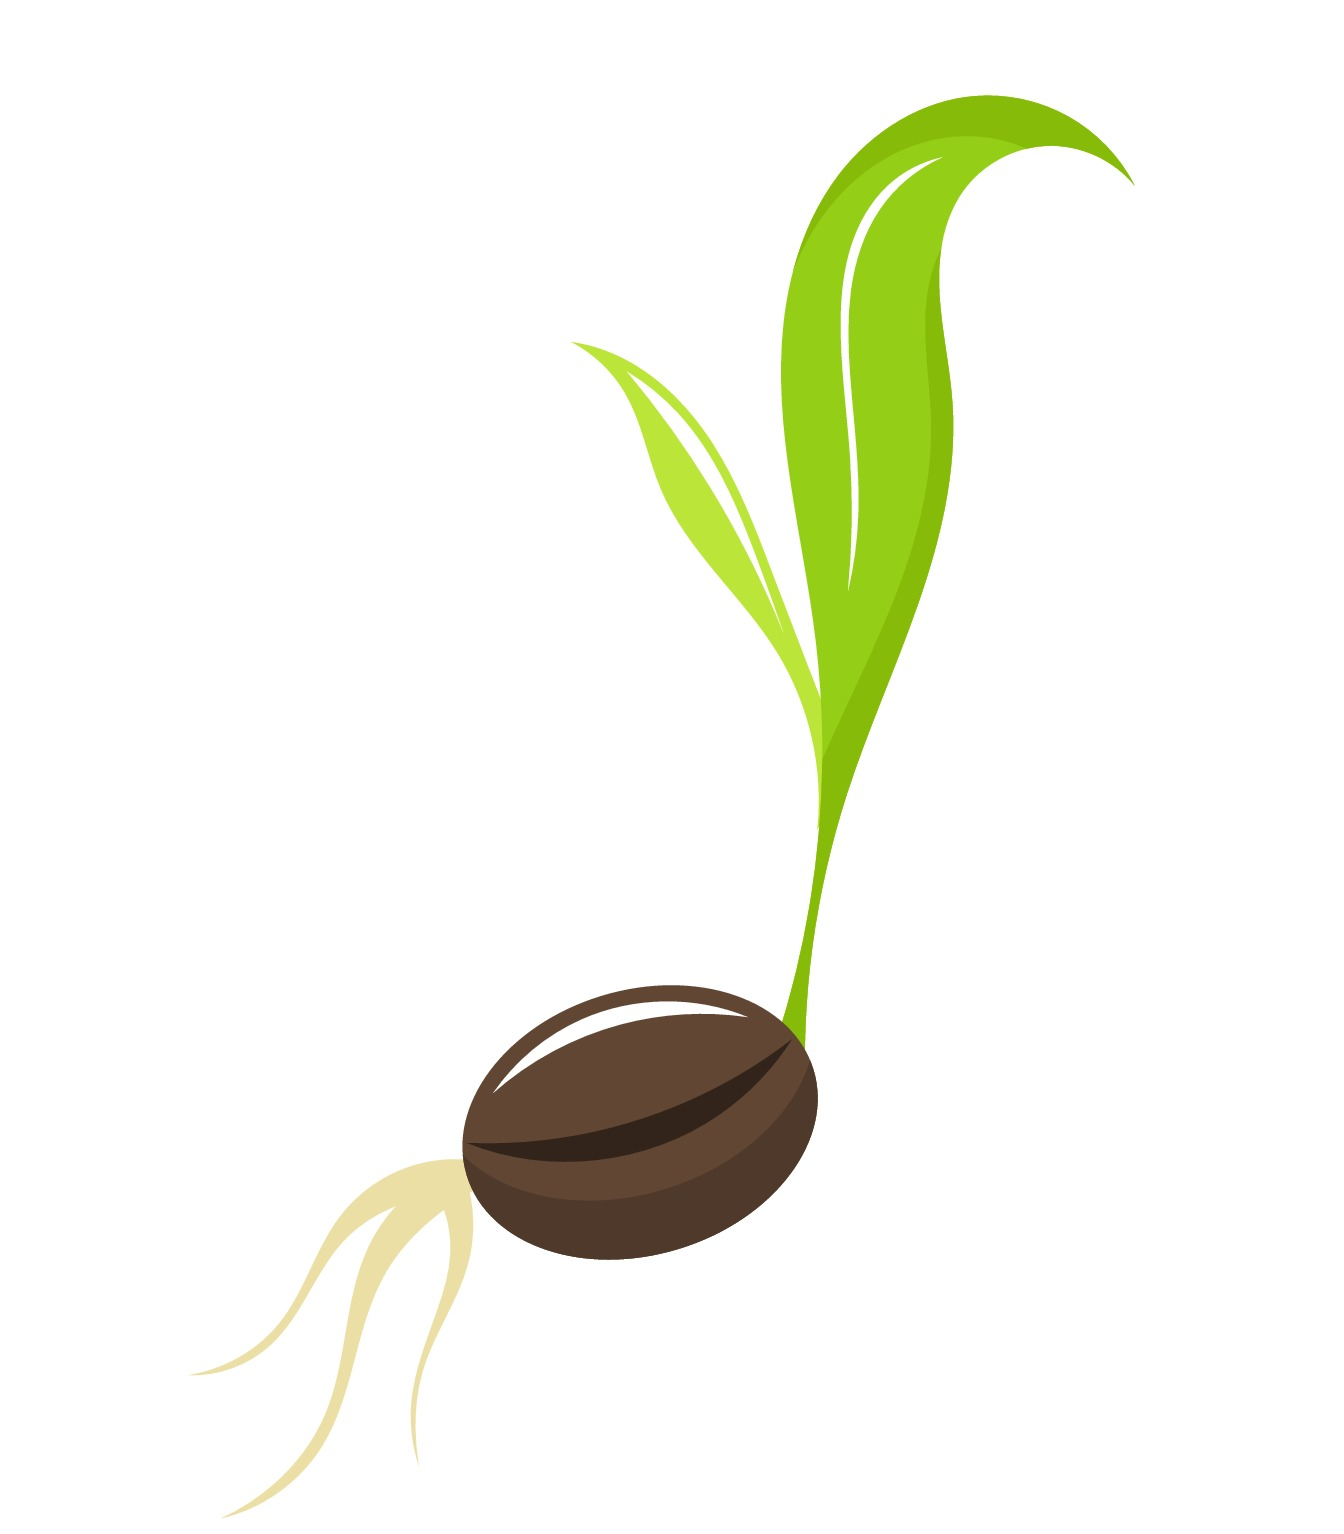 Seed Clipart